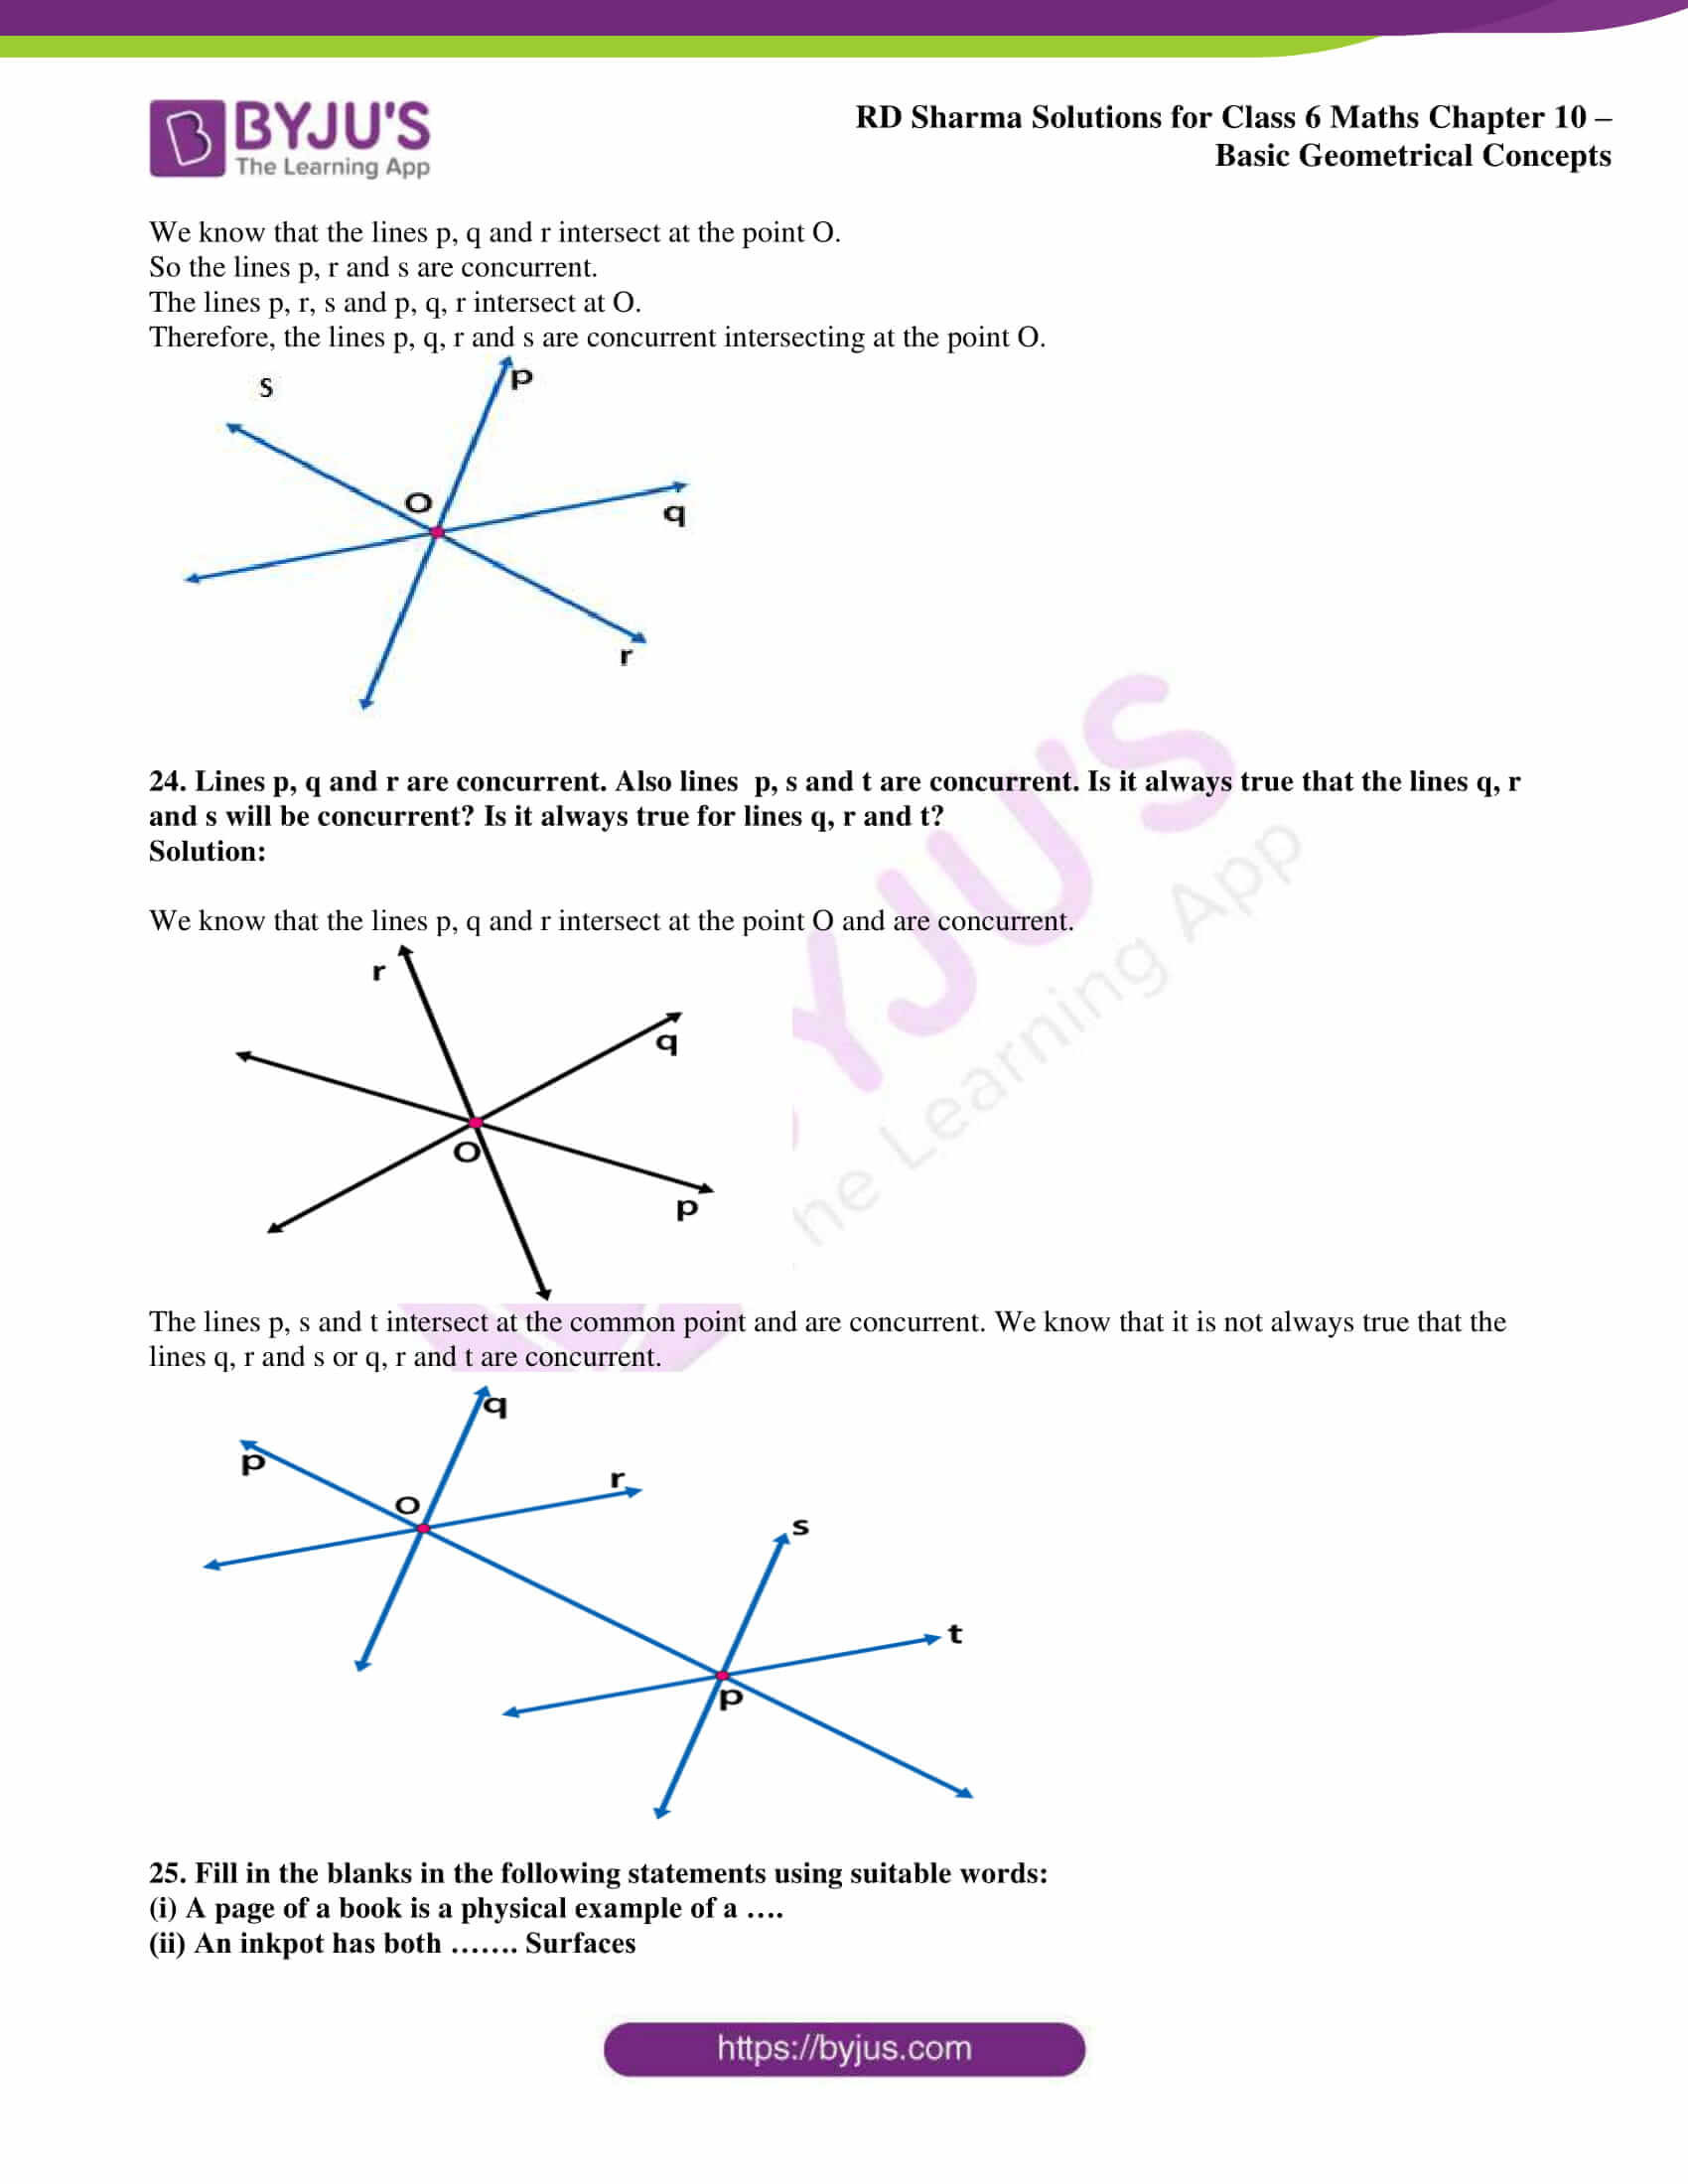 Points Of Concurrency Worksheet Answers Rd Sharma solutions for Class 6 Chapter 10 Basic Geometrical